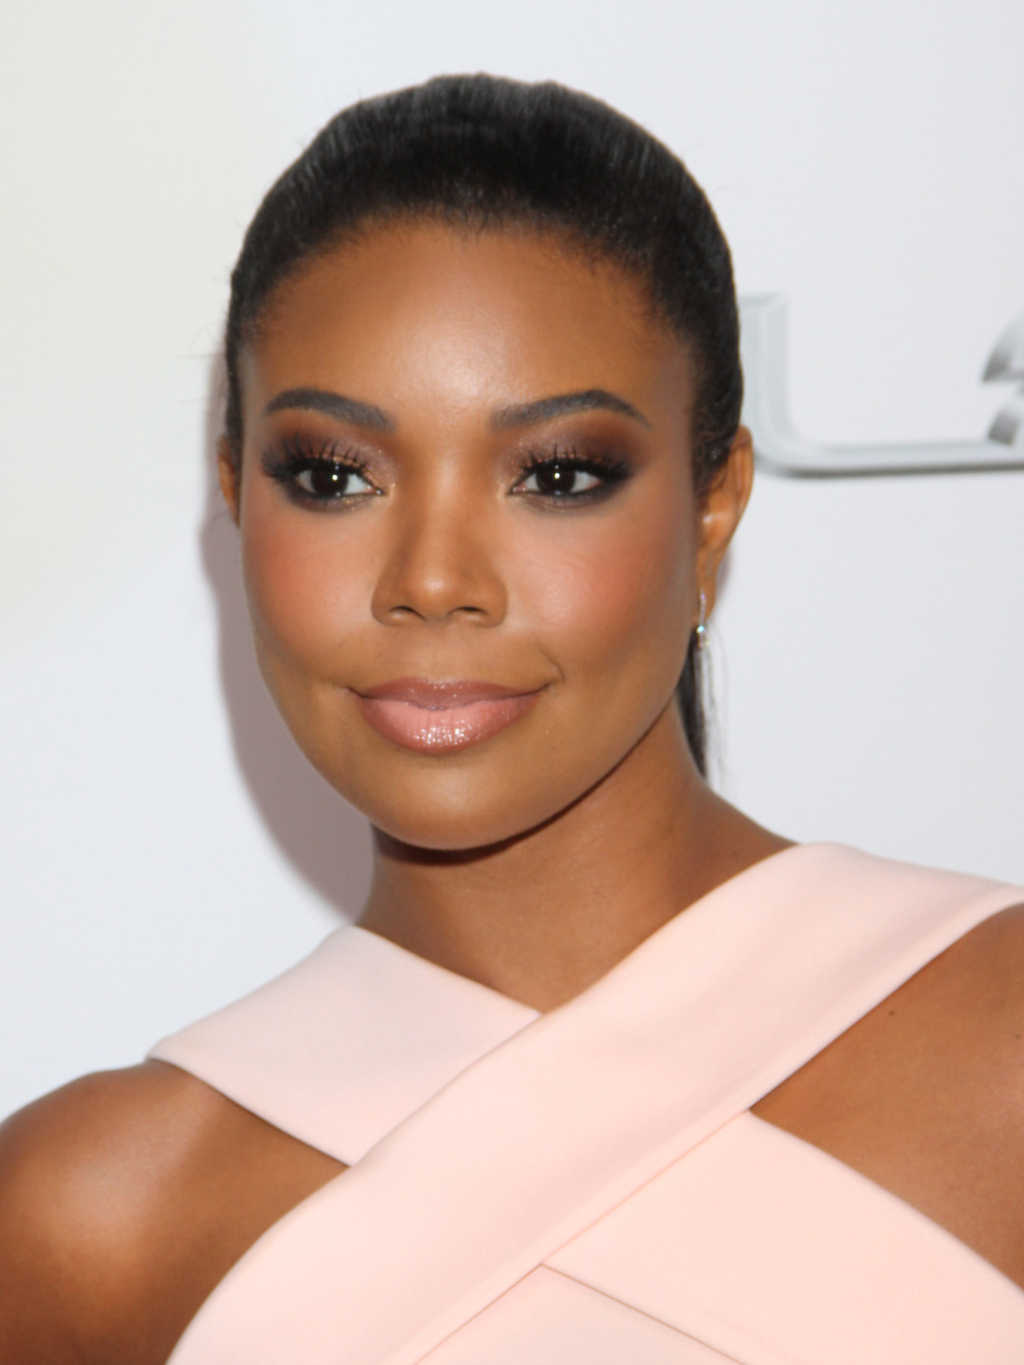 Famous female celebrities, female celebrities' photo Gabrielle union photo gallery